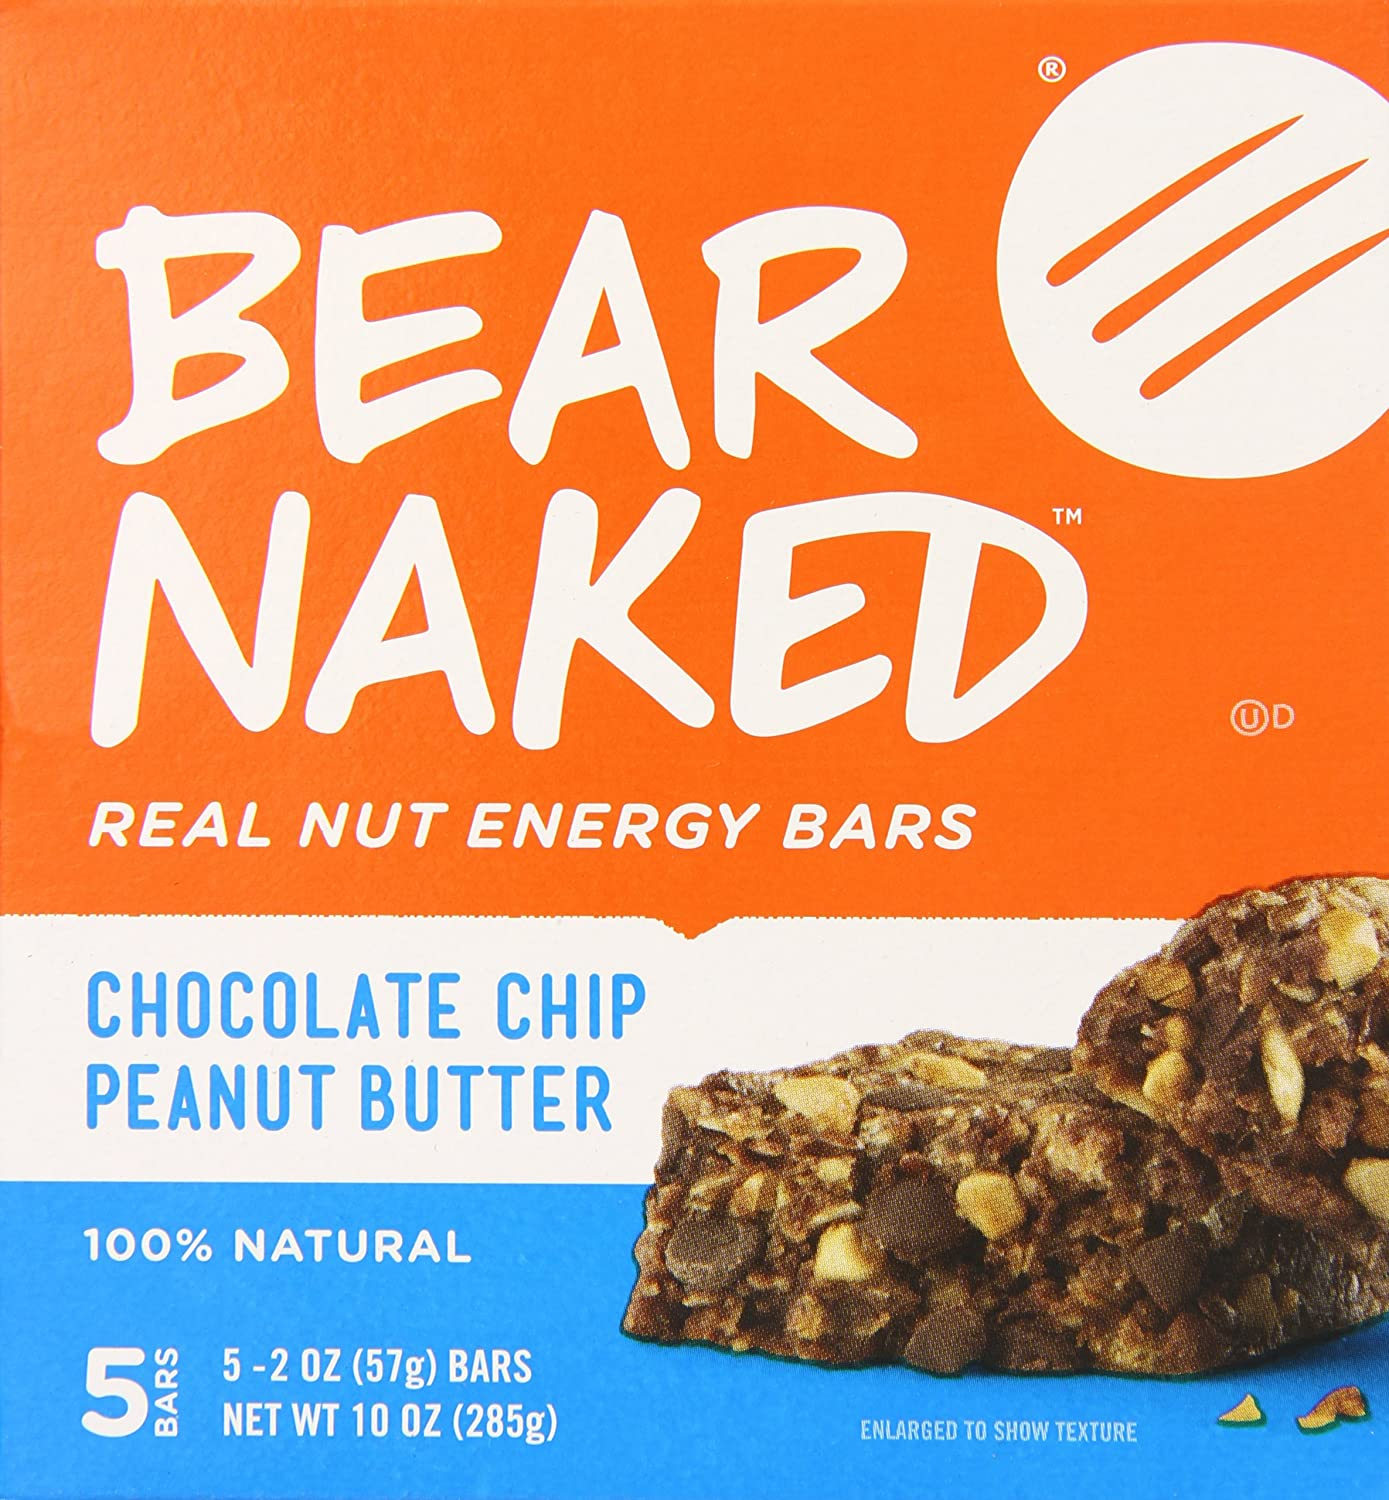 Bare naked chocolate, cramping after sexual intercourse